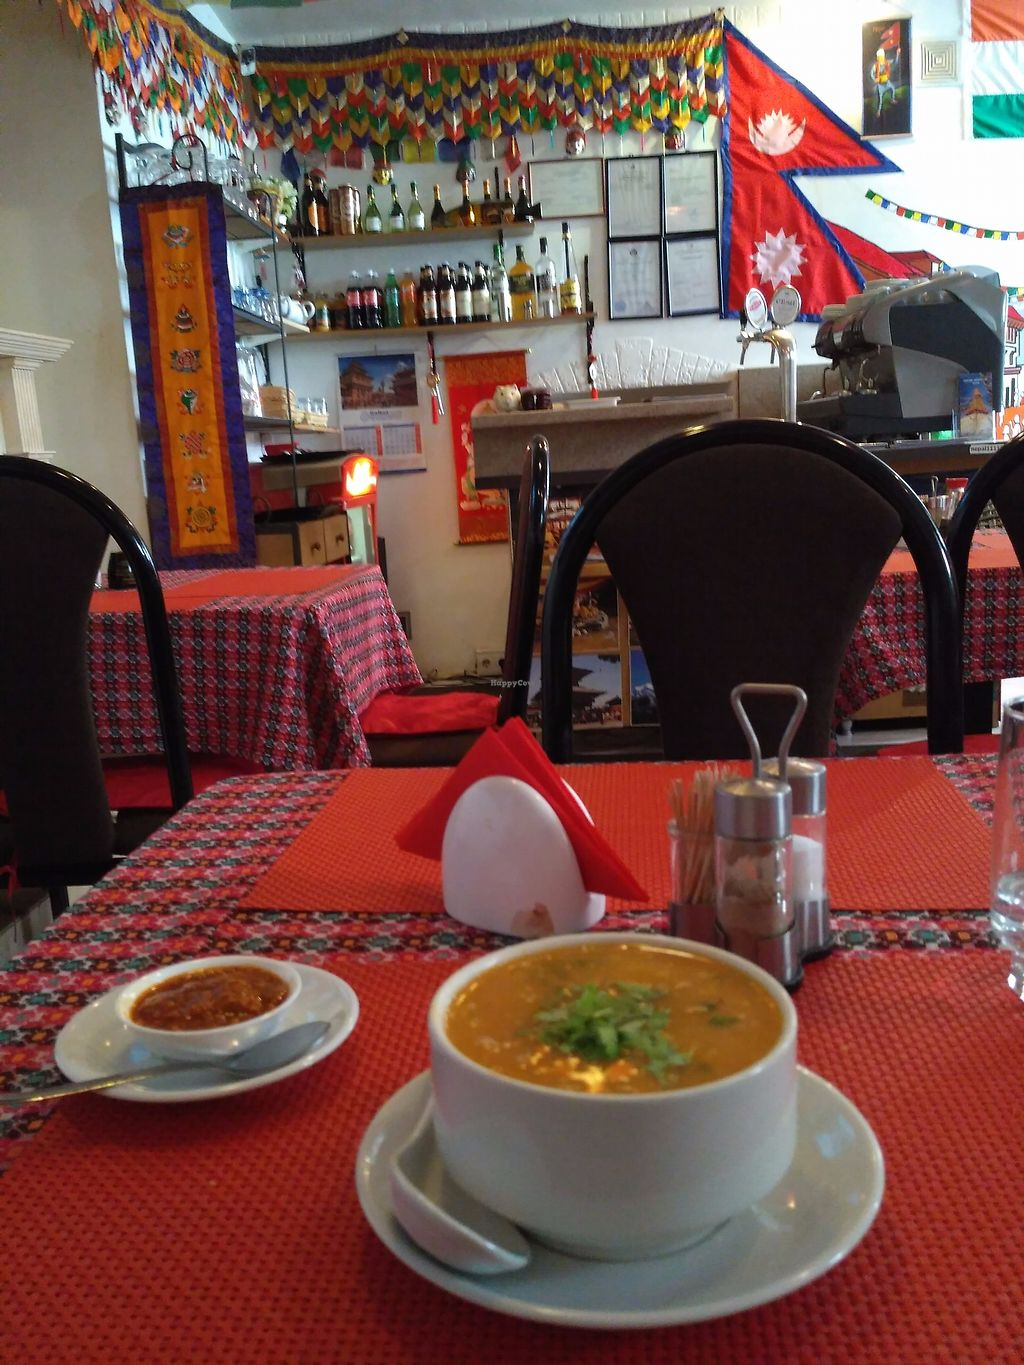 """Photo of Himalaju Azijas Virtuve - Blaumaņa  by <a href=""""/members/profile/AsafAvner"""">AsafAvner</a> <br/>Great atmosphere, lots of vegan options and very nice staff! <br/> June 21, 2017  - <a href='/contact/abuse/image/71751/271822'>Report</a>"""